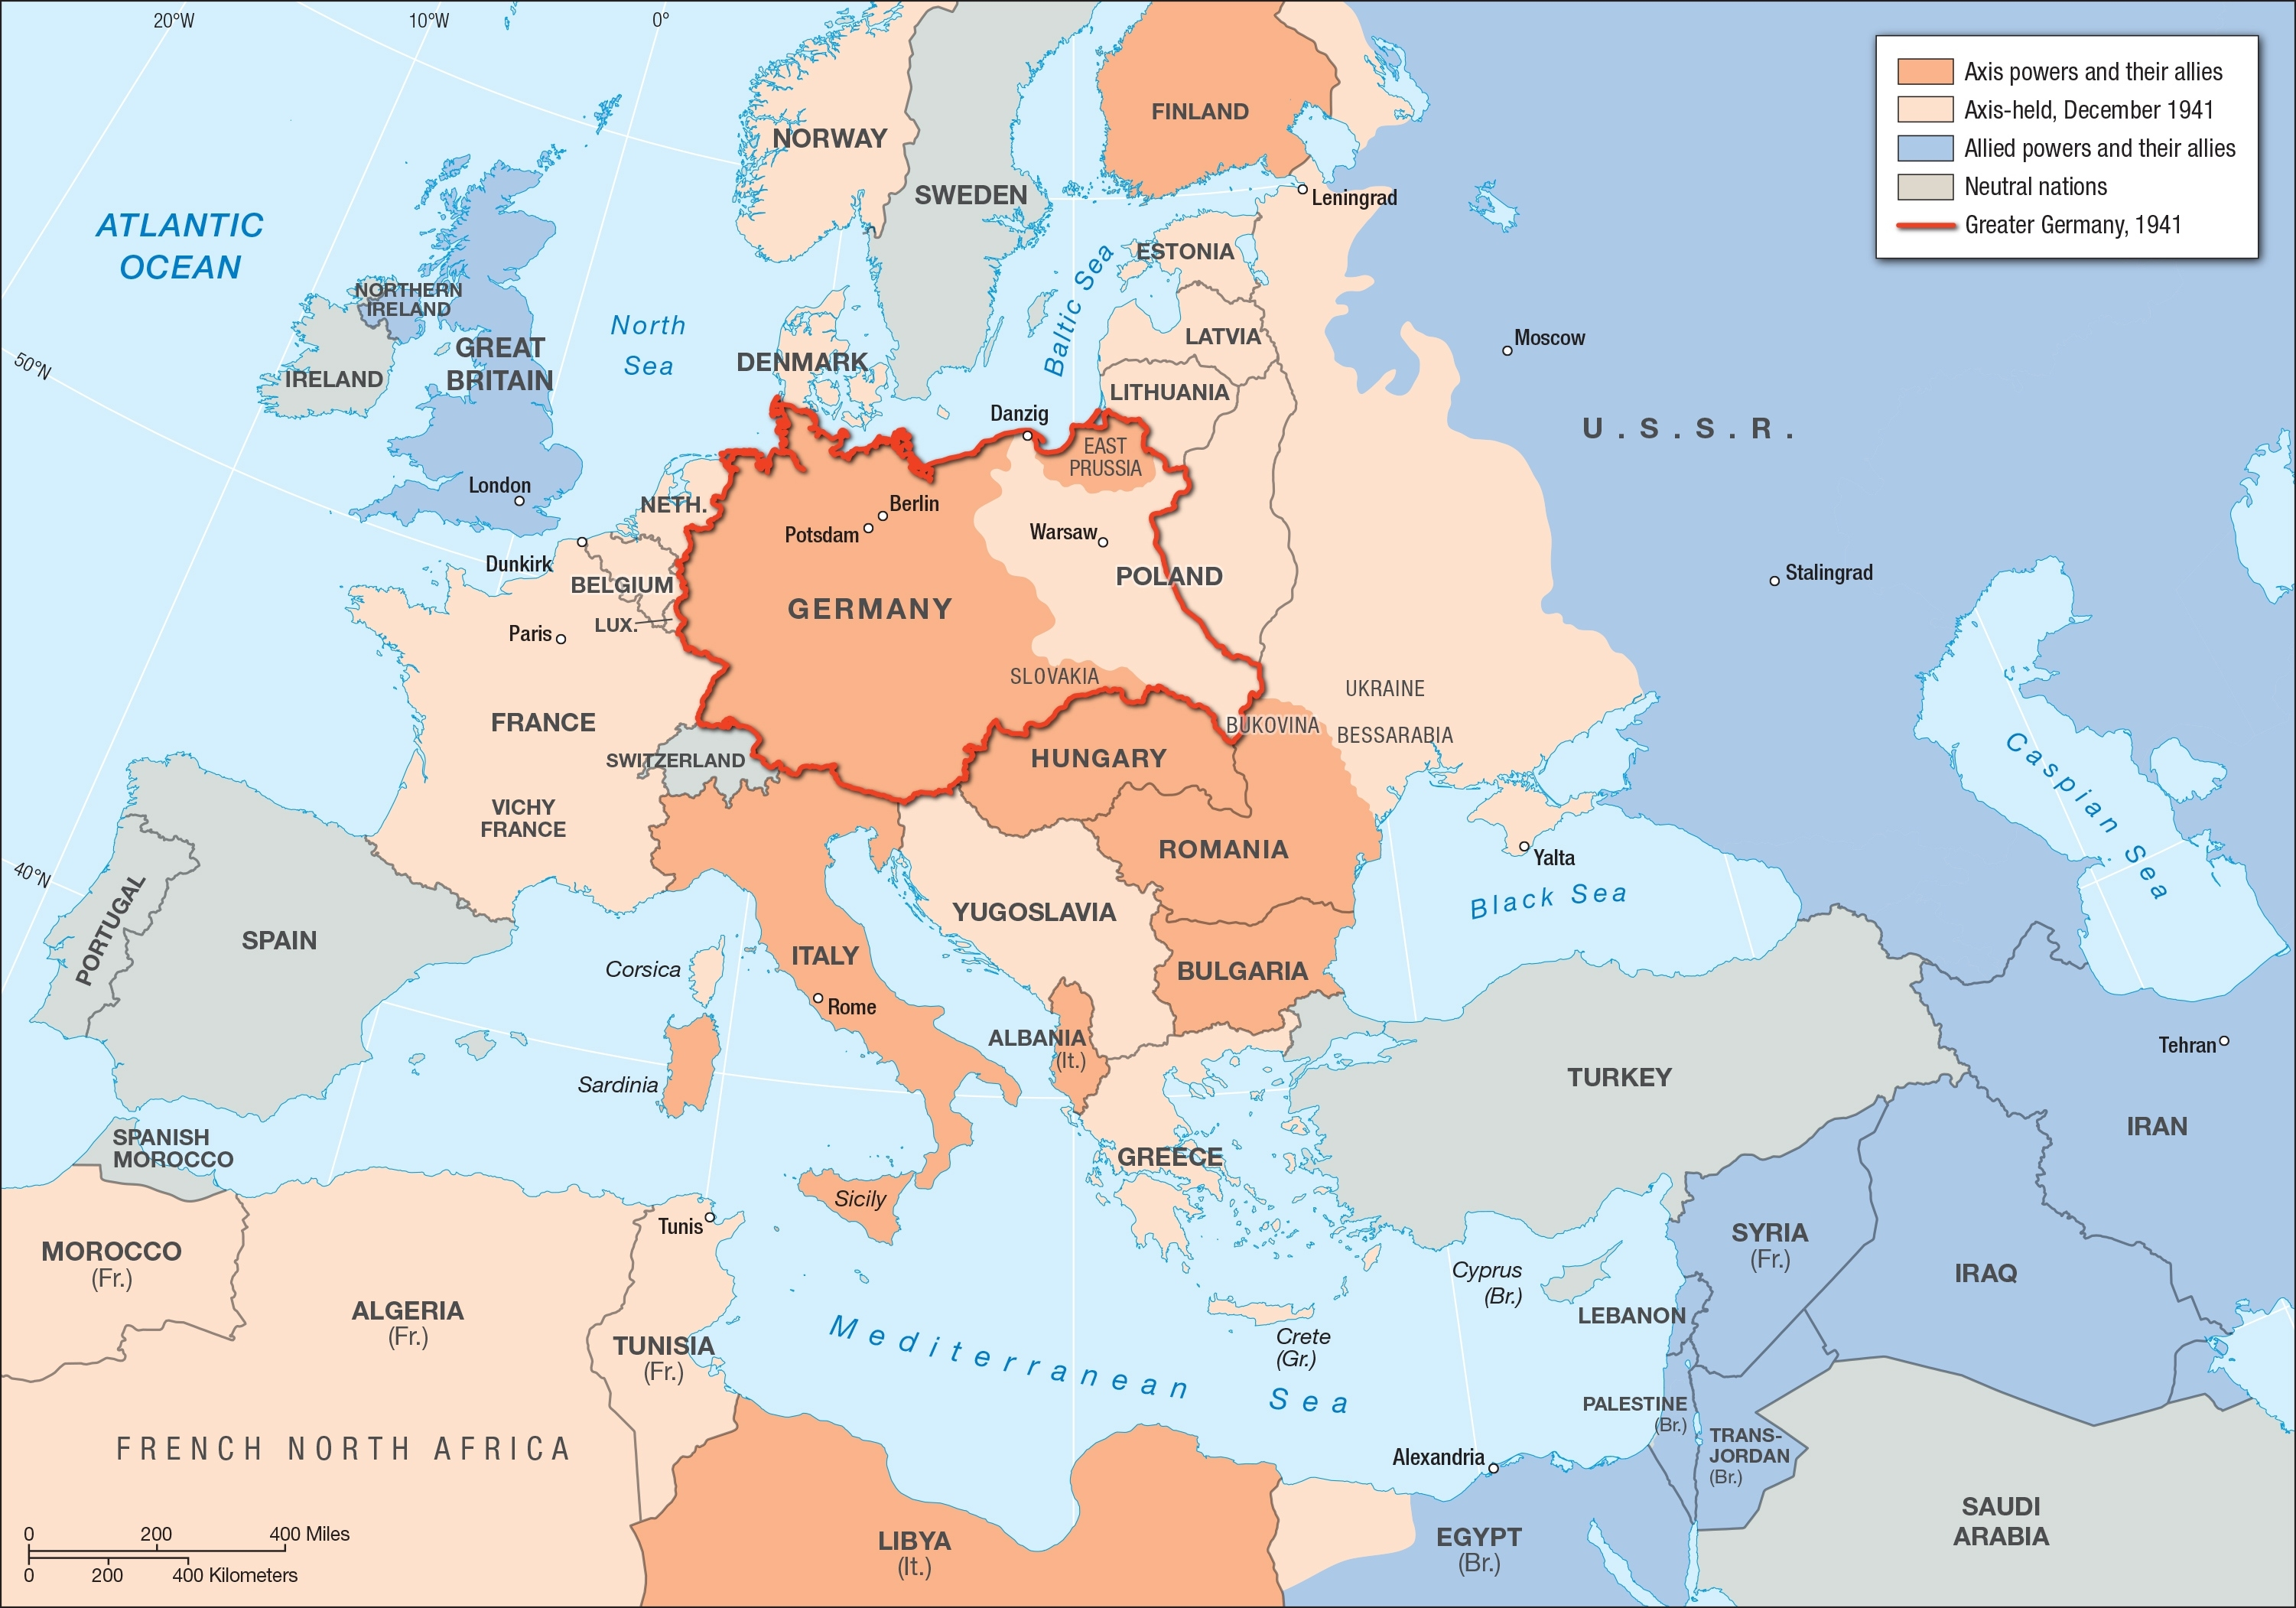 Europe And The Middle East, 1941 | Facing History And Ourselves pertaining to Germany Map Before Ww2 And After